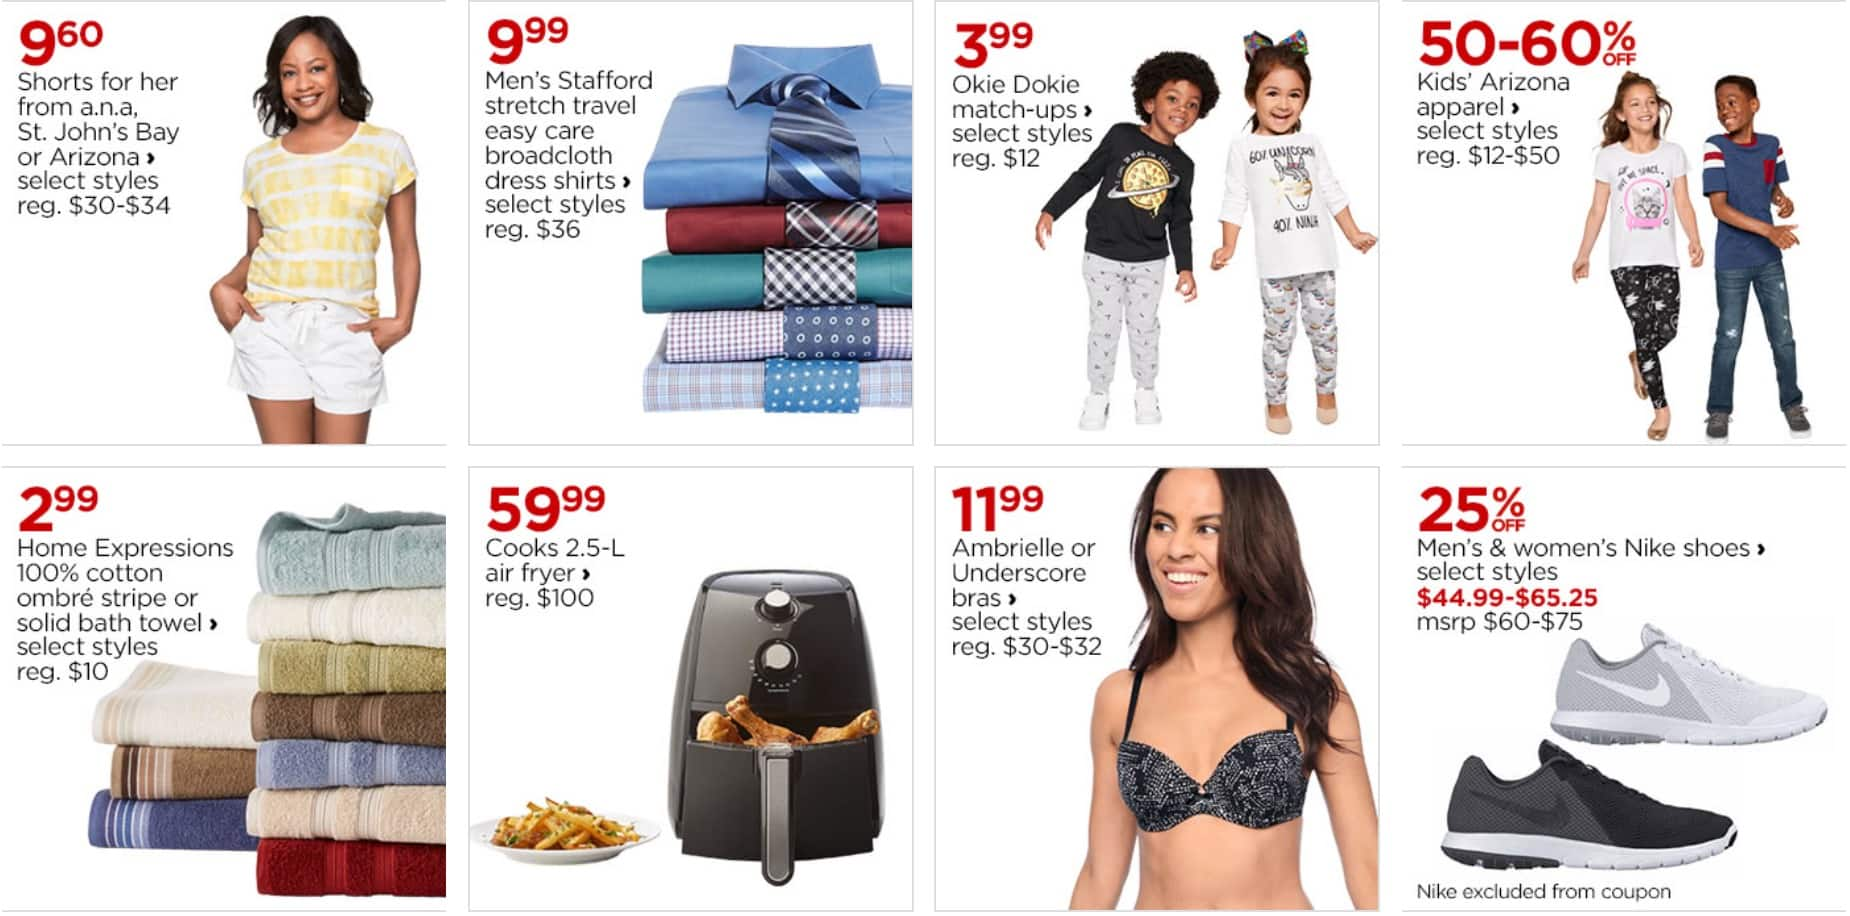 36cb86756f909 How to Score Amazing Deals at the JCPenney Black Friday in July Sale ...